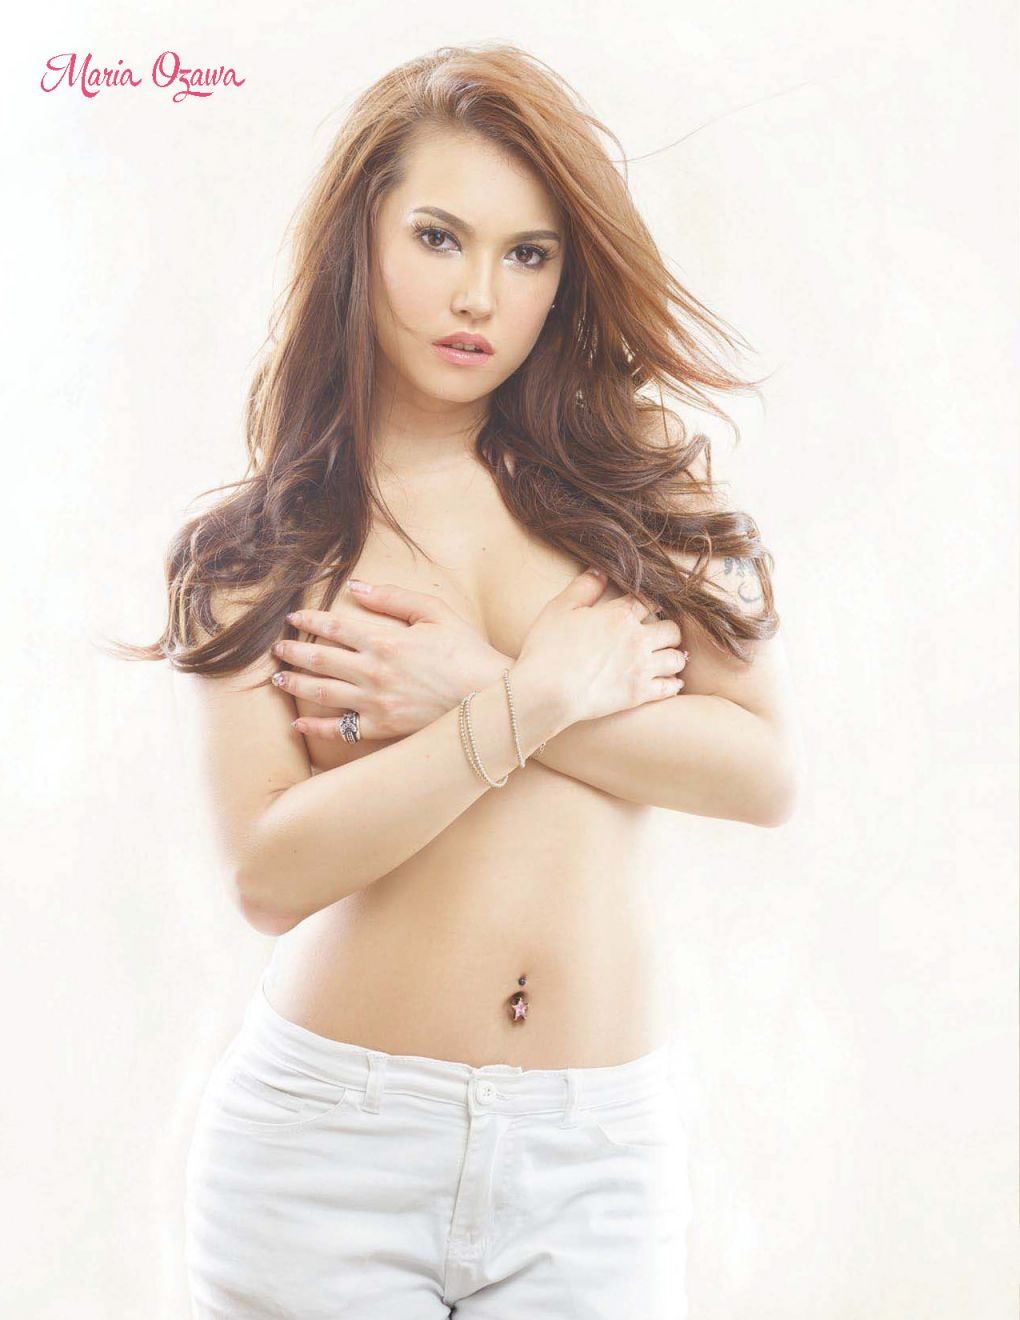 Japanese Sexy Model Maria Ozawa Topless Pictures-9706